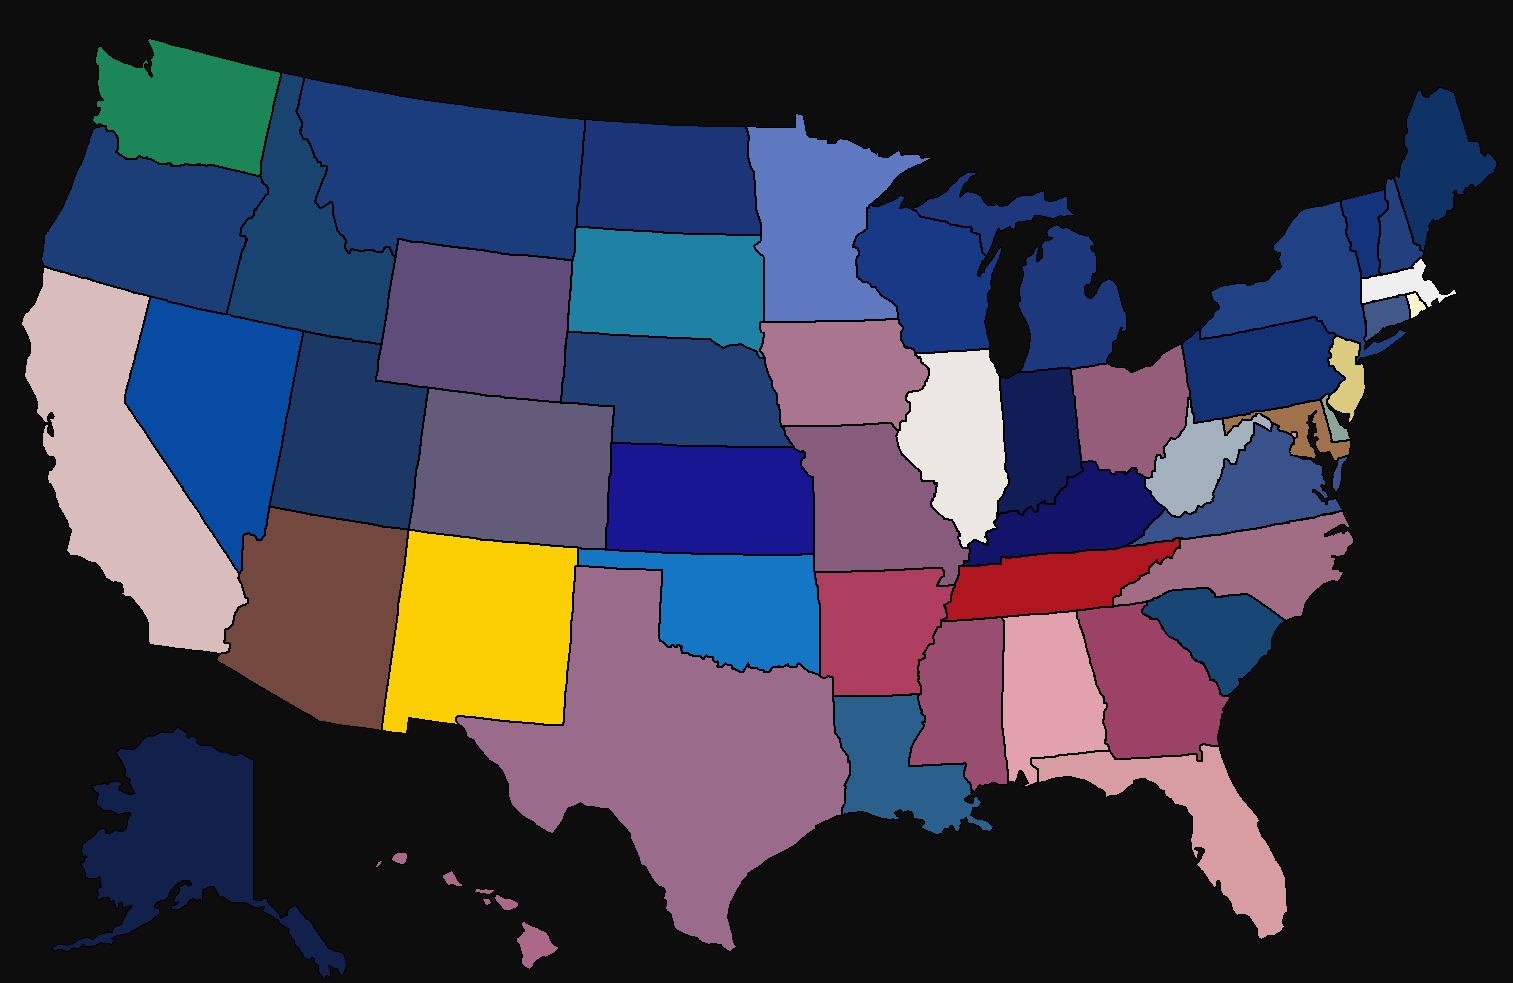 average colour hue of US state flags